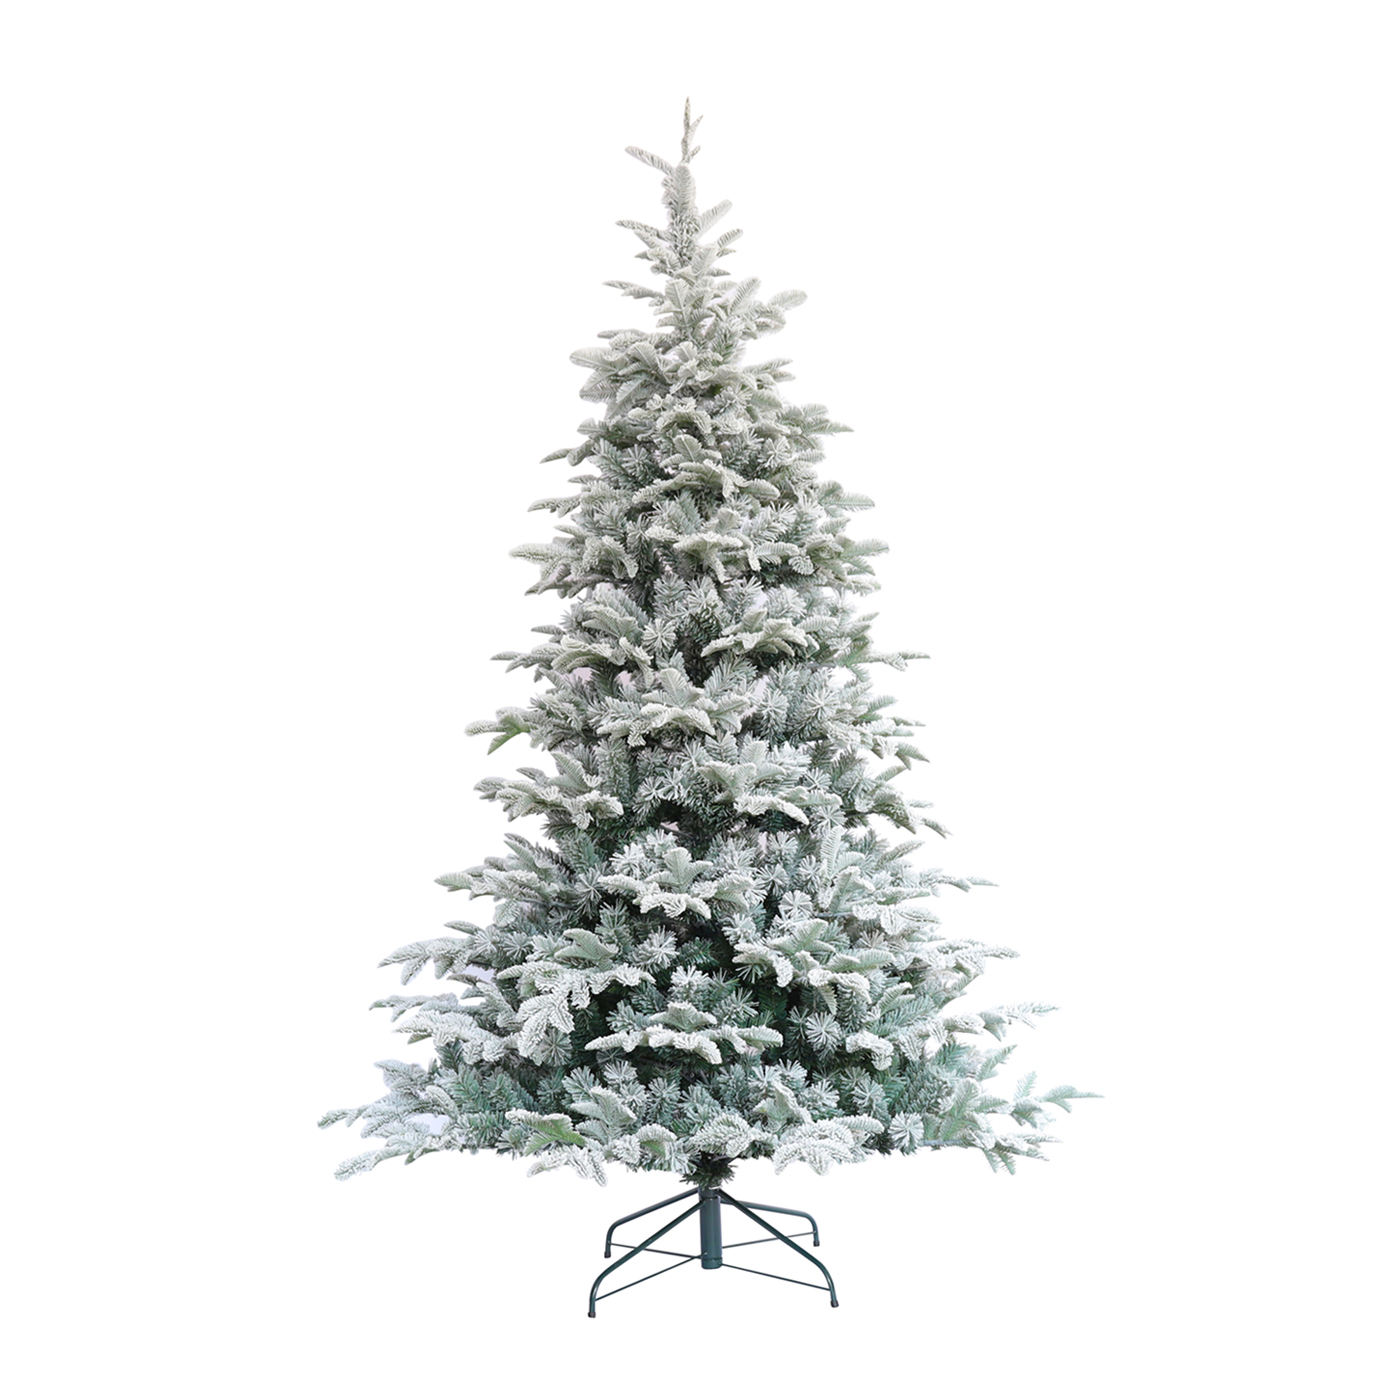 Snowflake Commercial Wholesale Luxury 6FT Pvc Pe Mixed High Quality White Artificial Snowing Flocked Christmas Tree